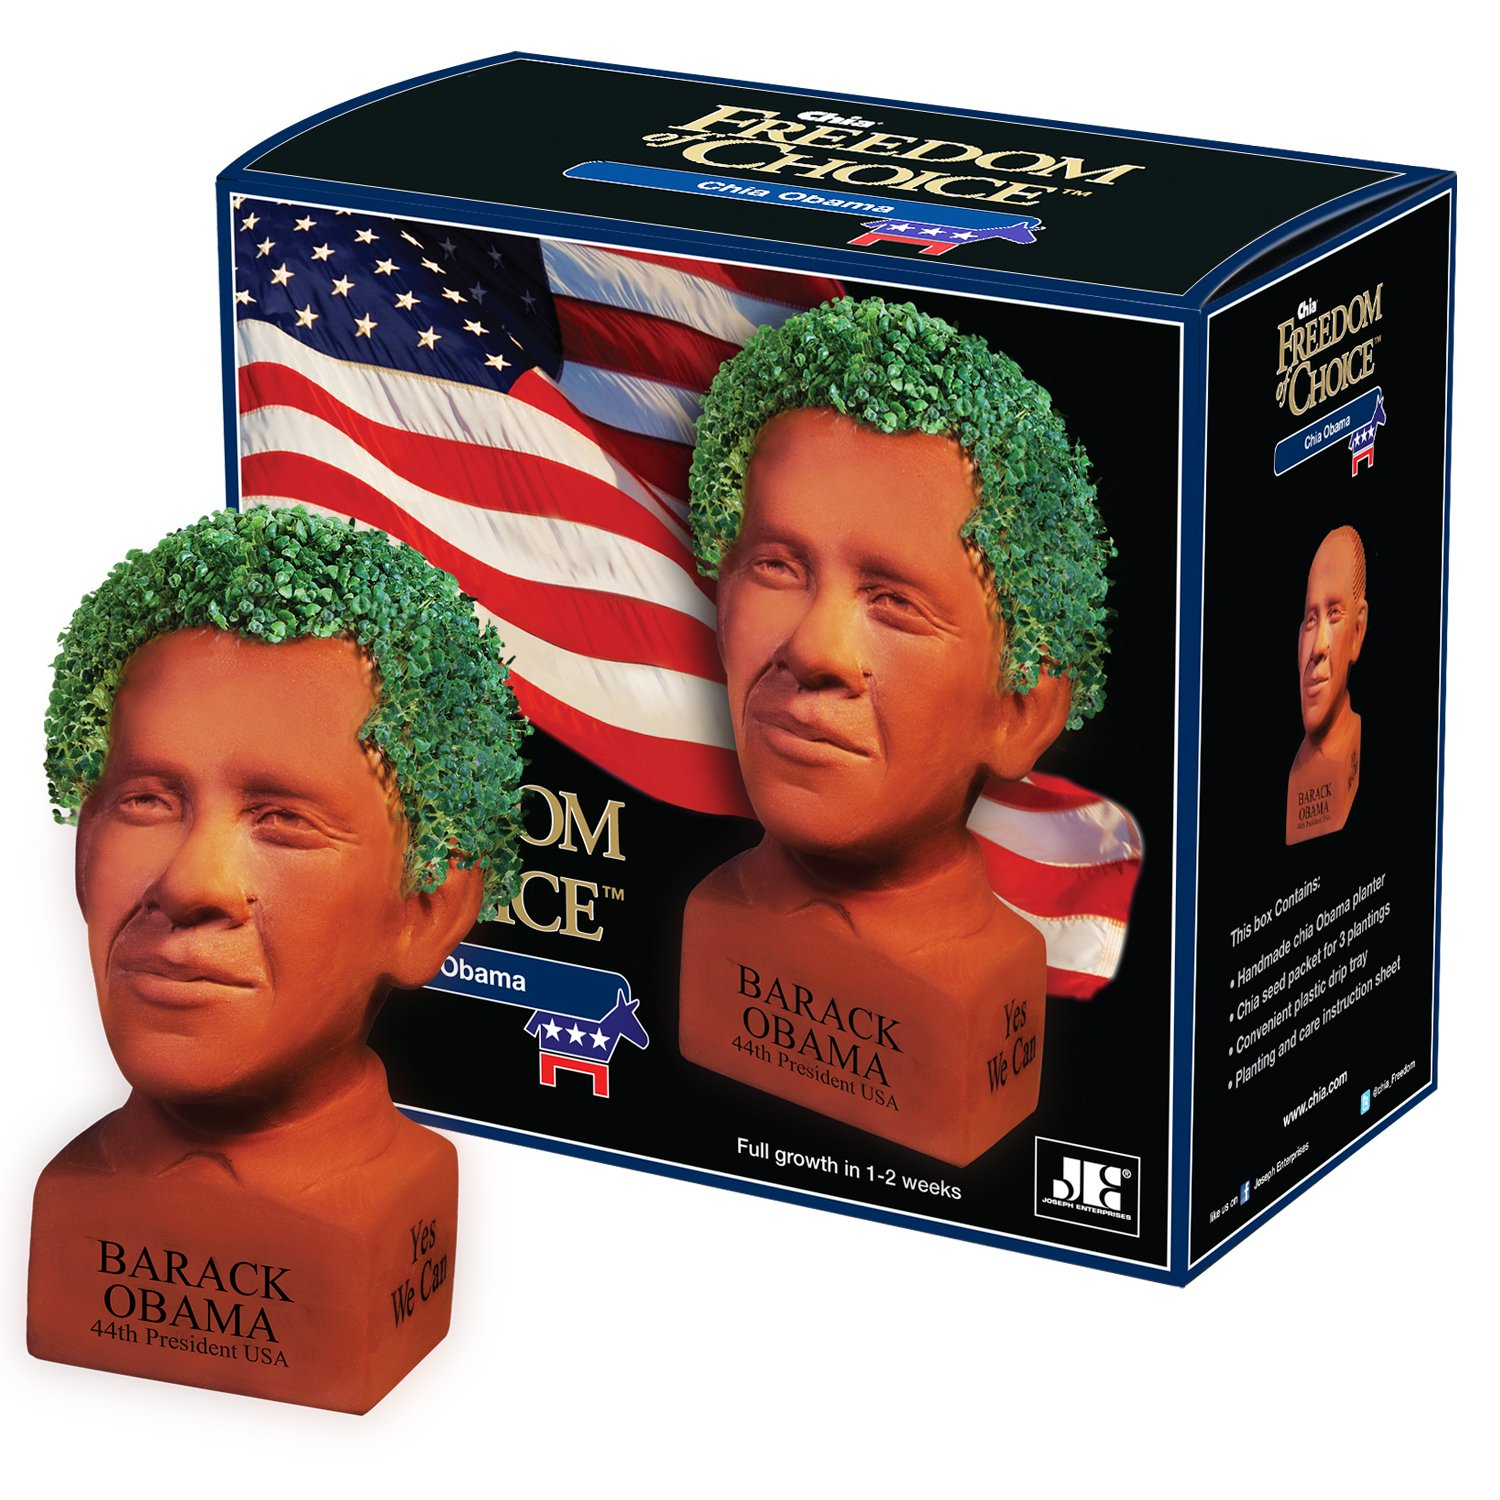 Chia Pet Barack Obama, Decorative Pottery Planter Perfect For Any Occasion